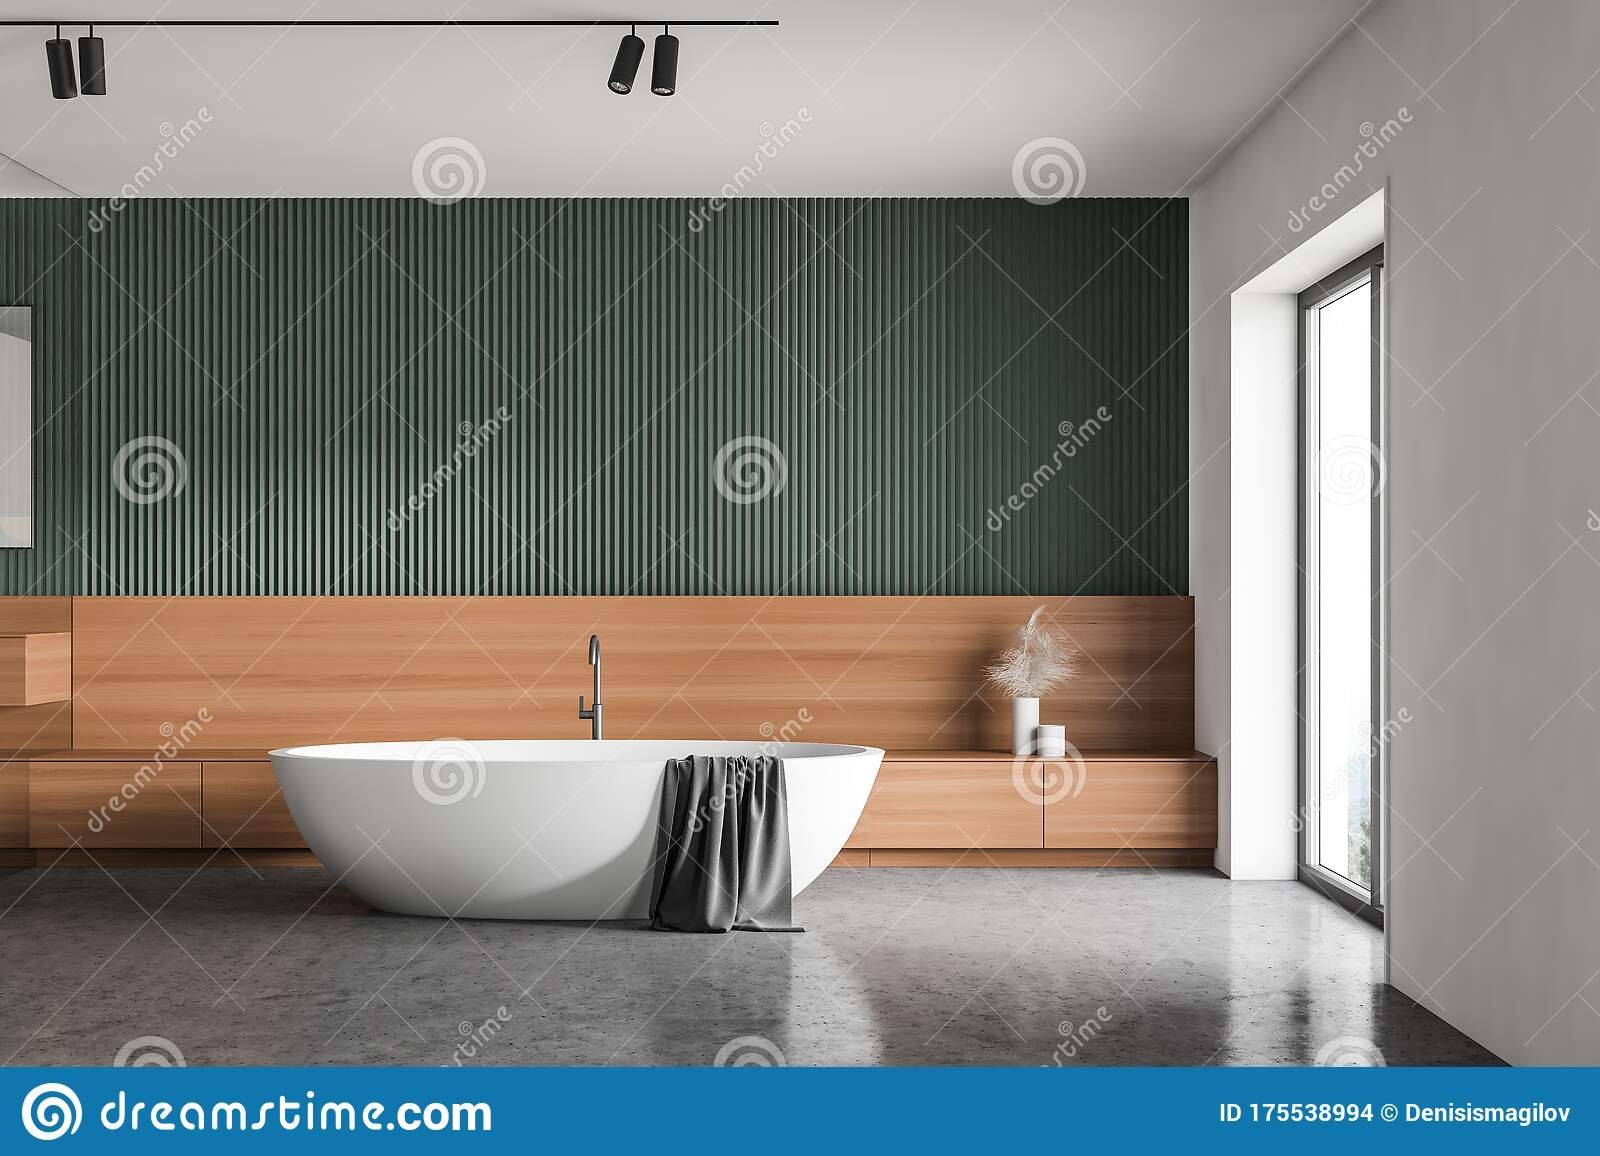 Comfortable Green And White Bathroom With Tub Stock Illustration Illustration Of Elegant Contemporary 175538994